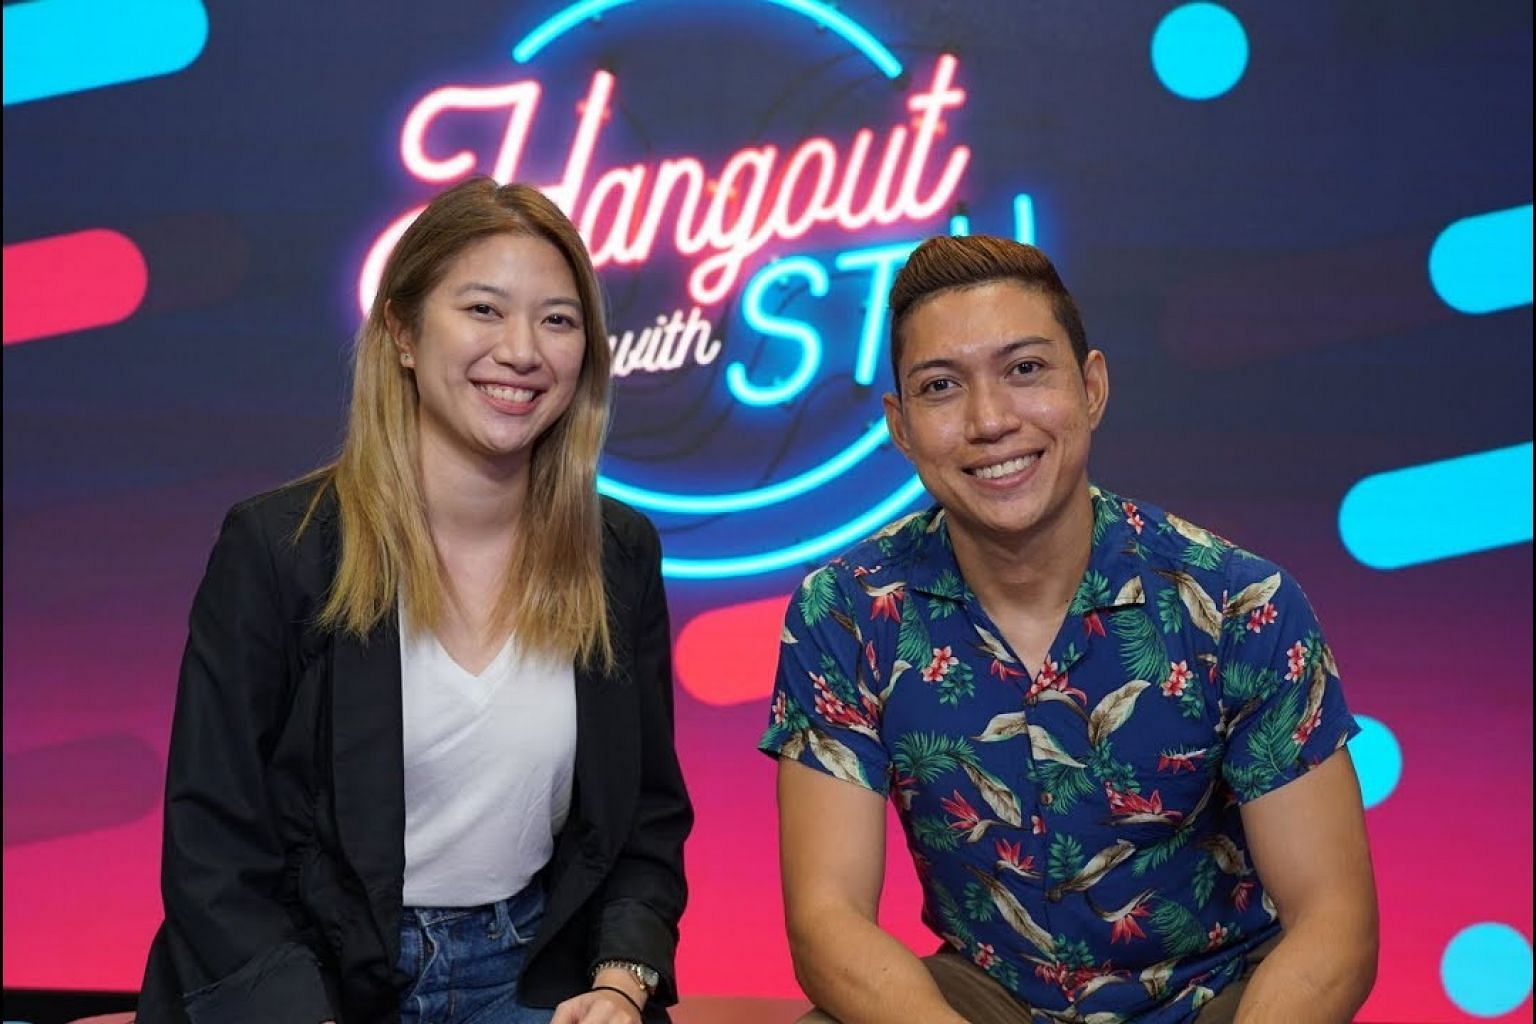 Hangout with ST: All about the haze | Hangout with Spider-Man wingman | Launch of new tech gadgets